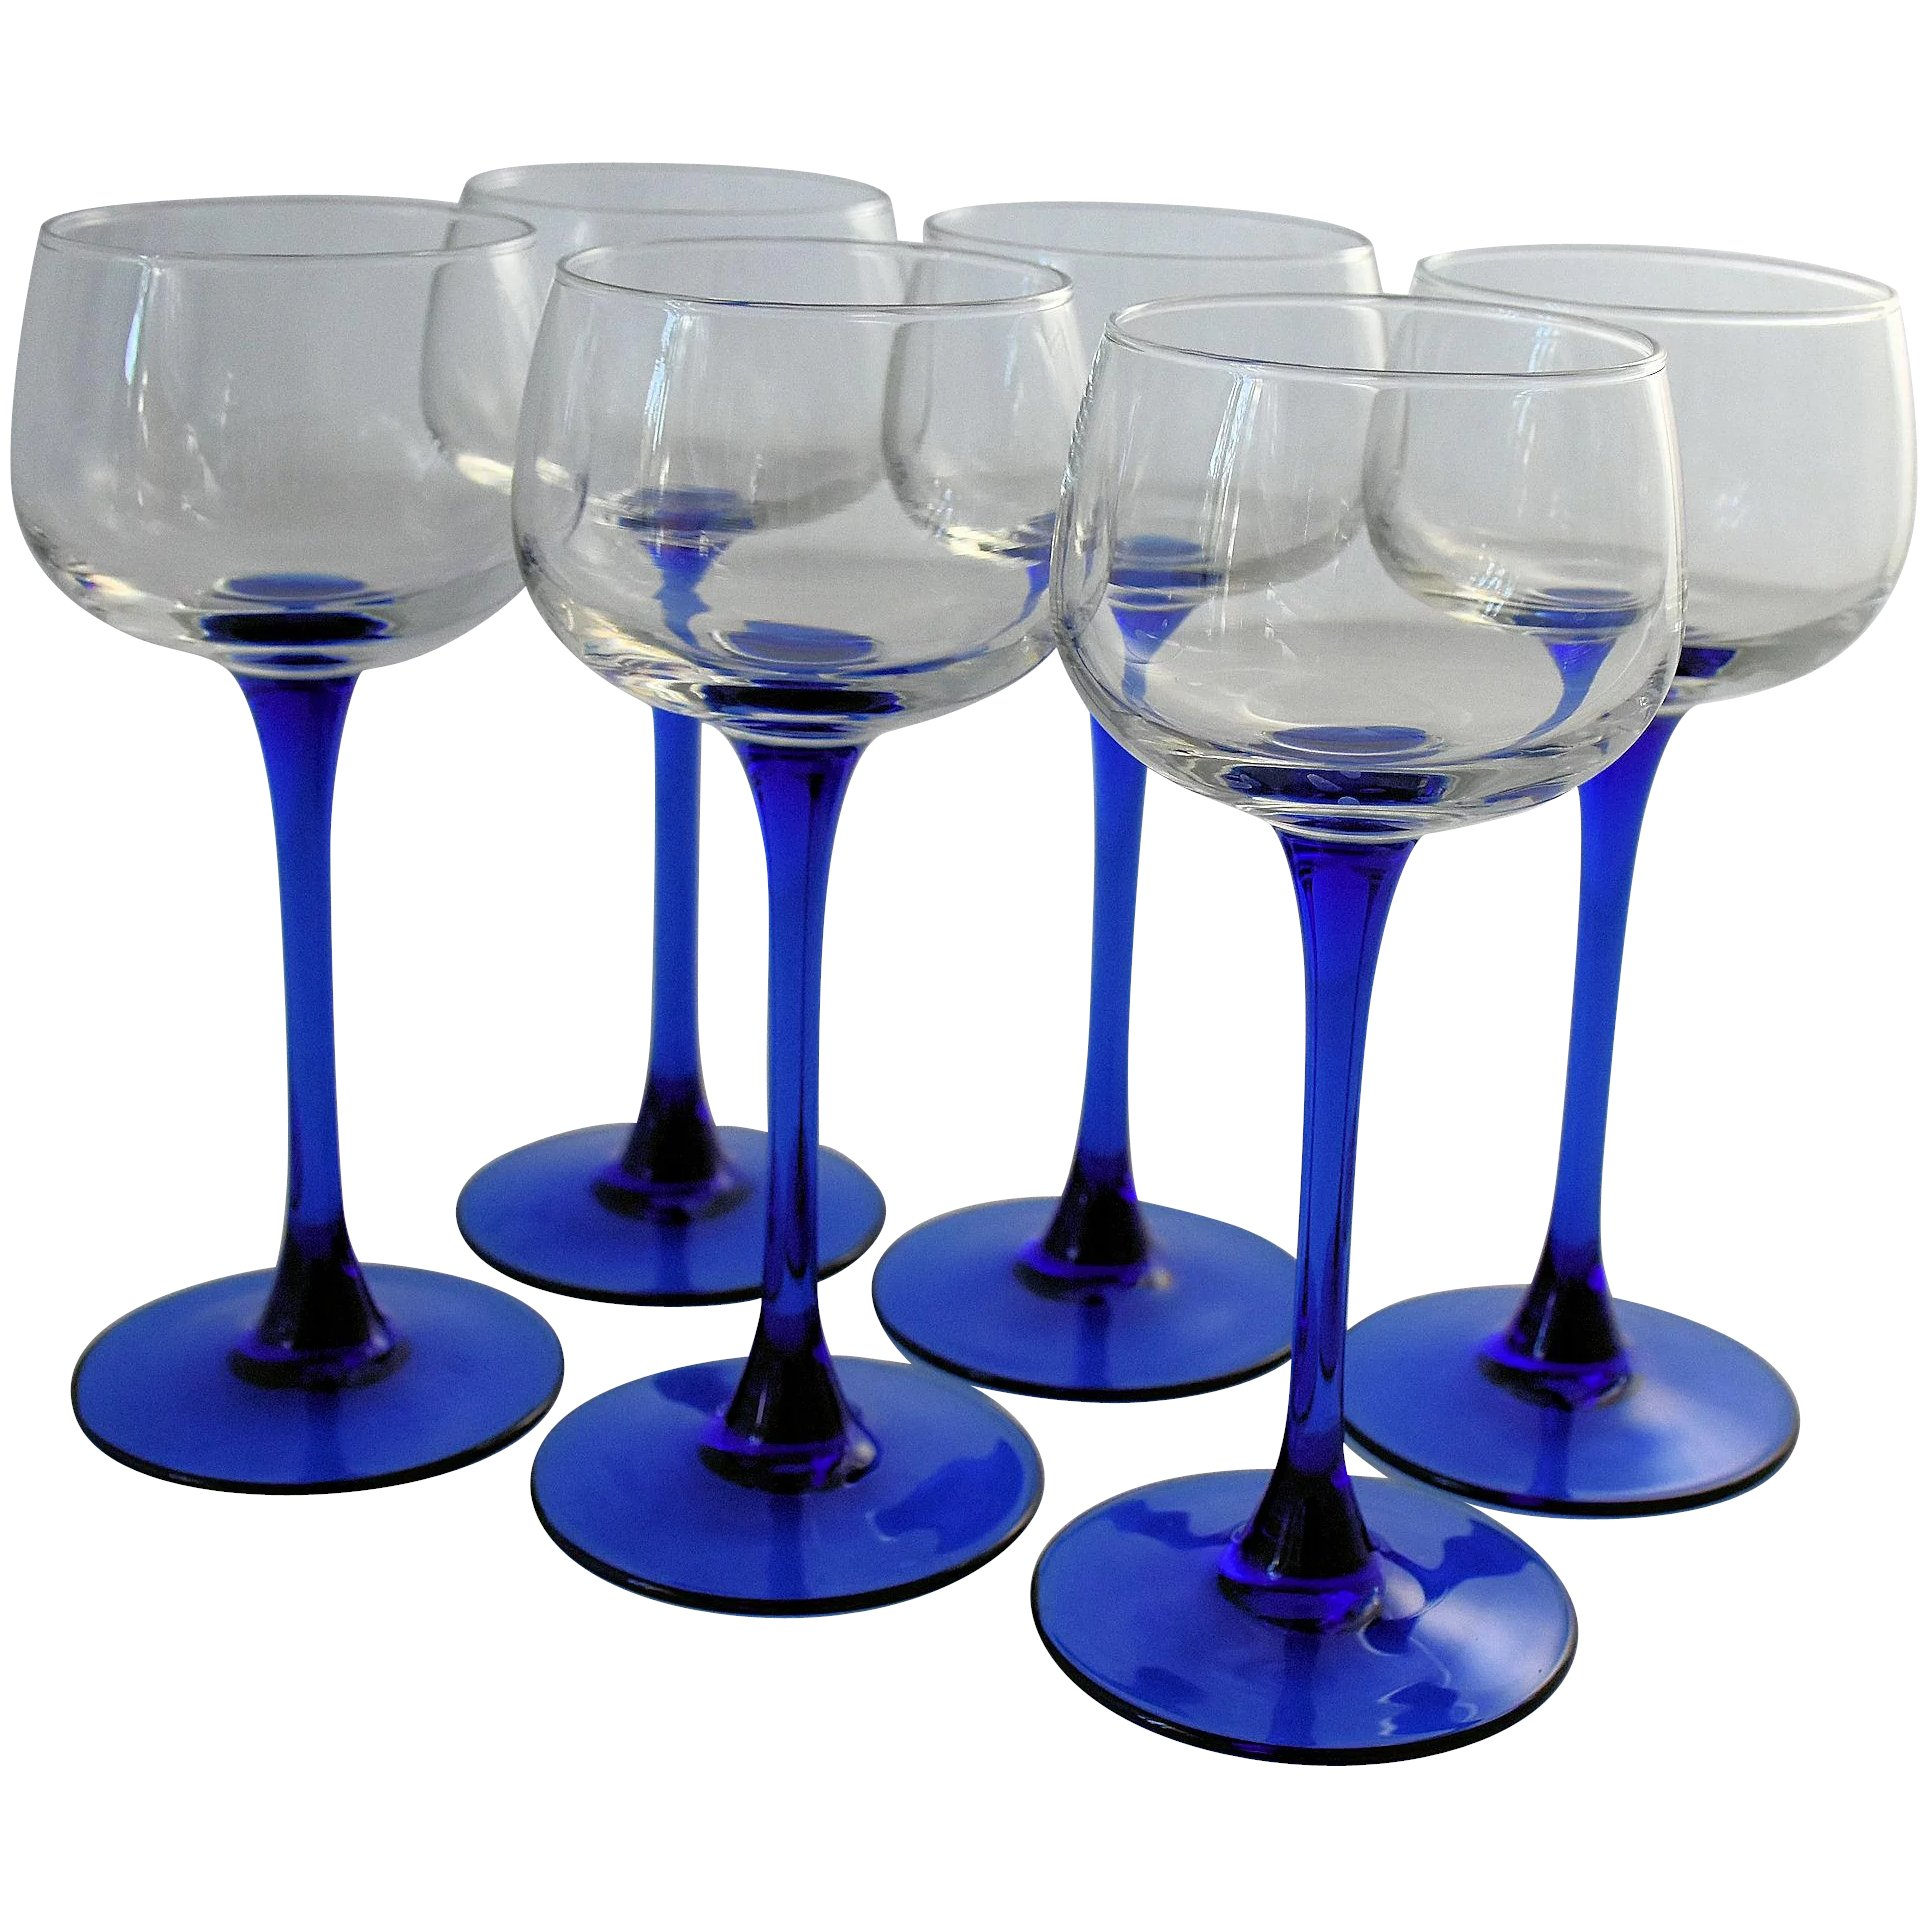 Luminarc Glass Luminarc Crystal Wine Glasses Cobalt Blue Sapphire Stems Made In France J G Durand Set Of Six